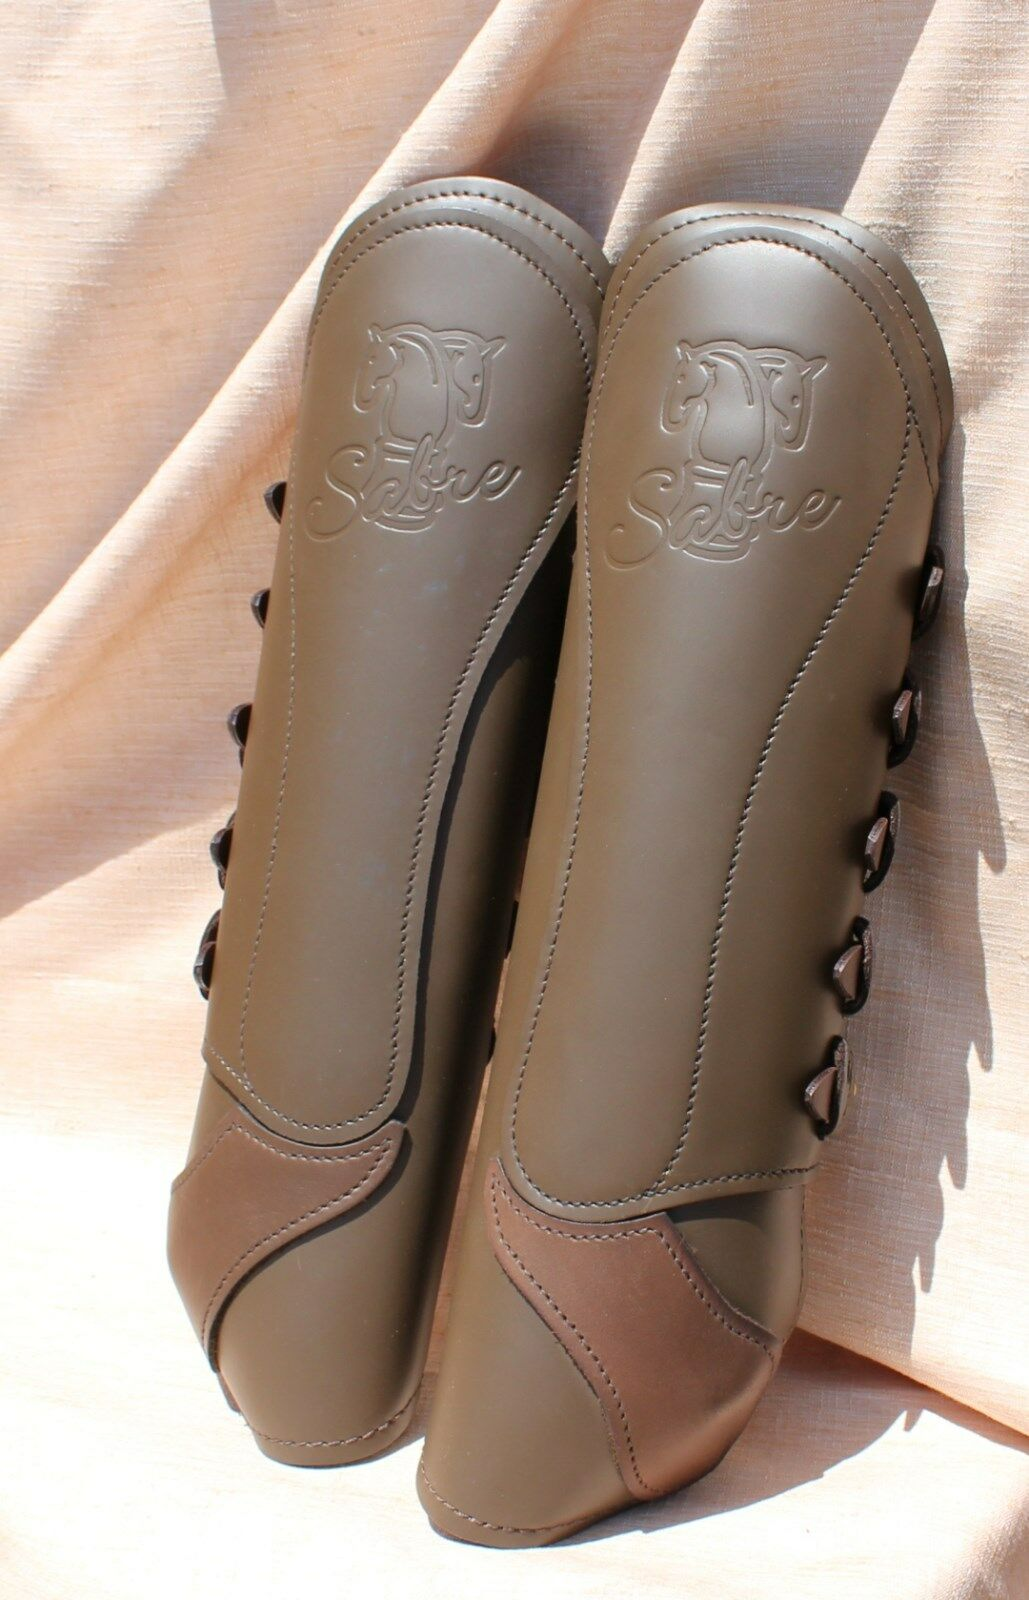 12-36 New Sabre hind eventing boots biothane straps made  in England was 165  free shipping worldwide